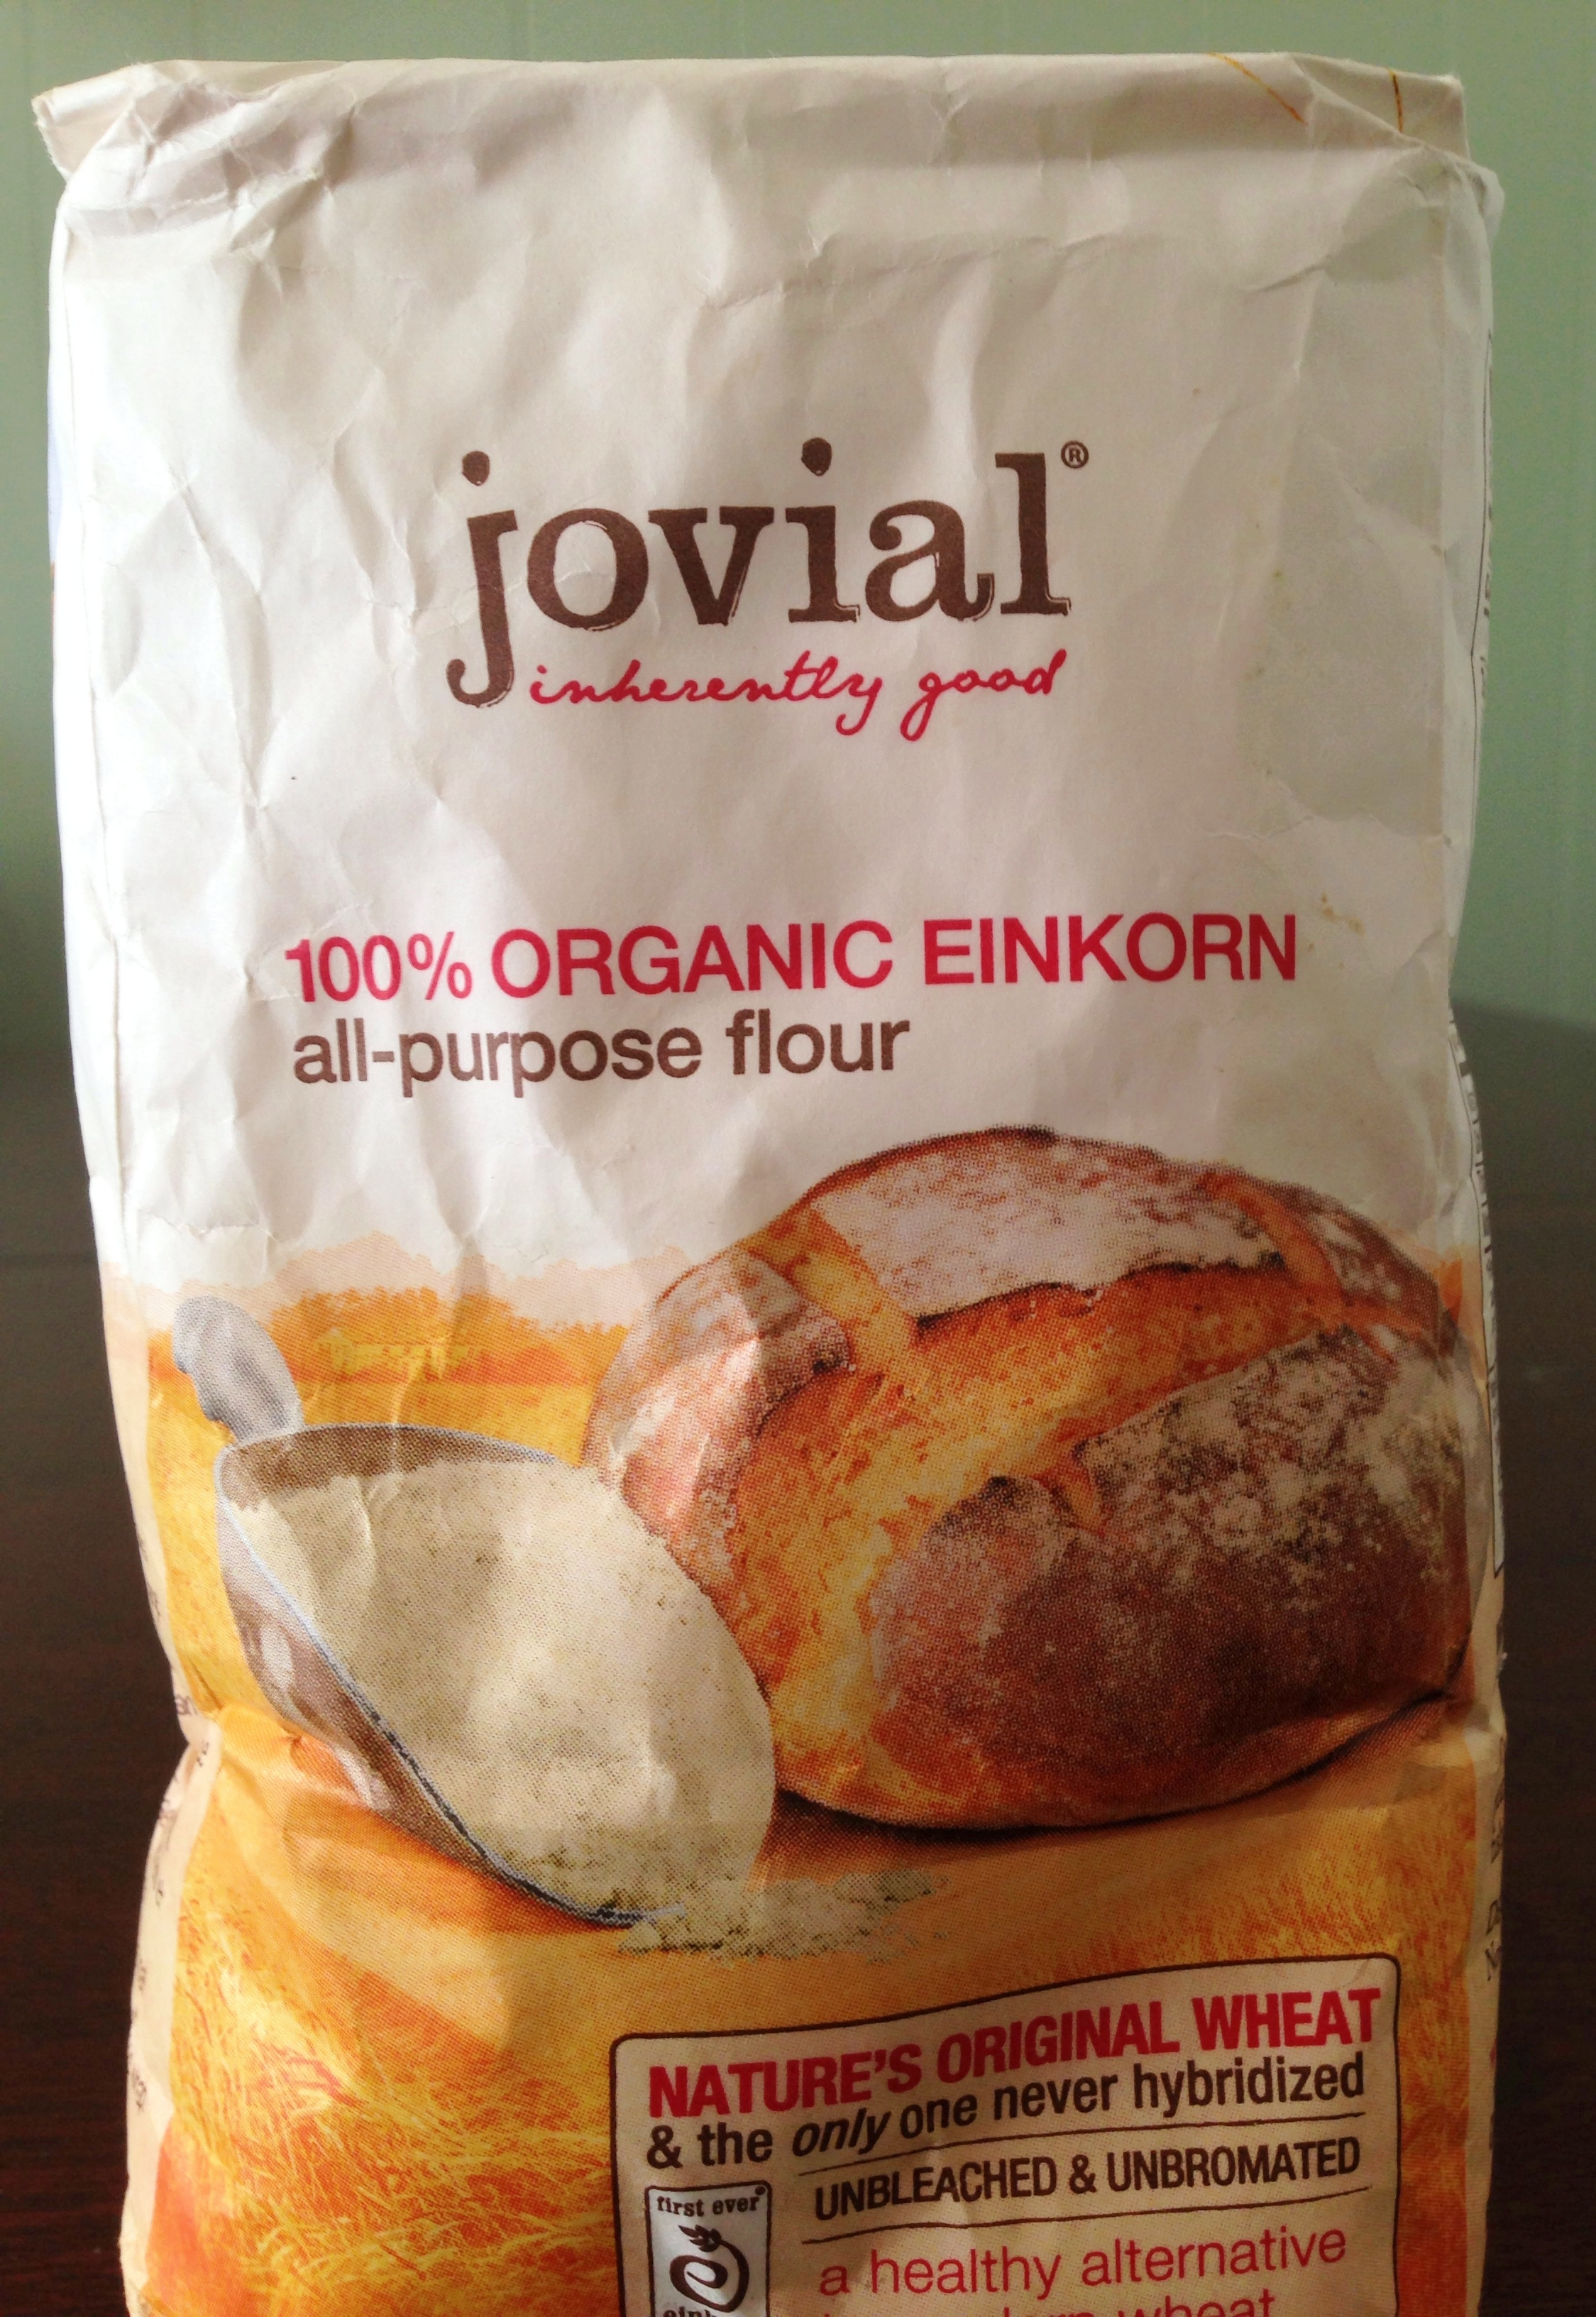 Recipes with Einkorn Flour